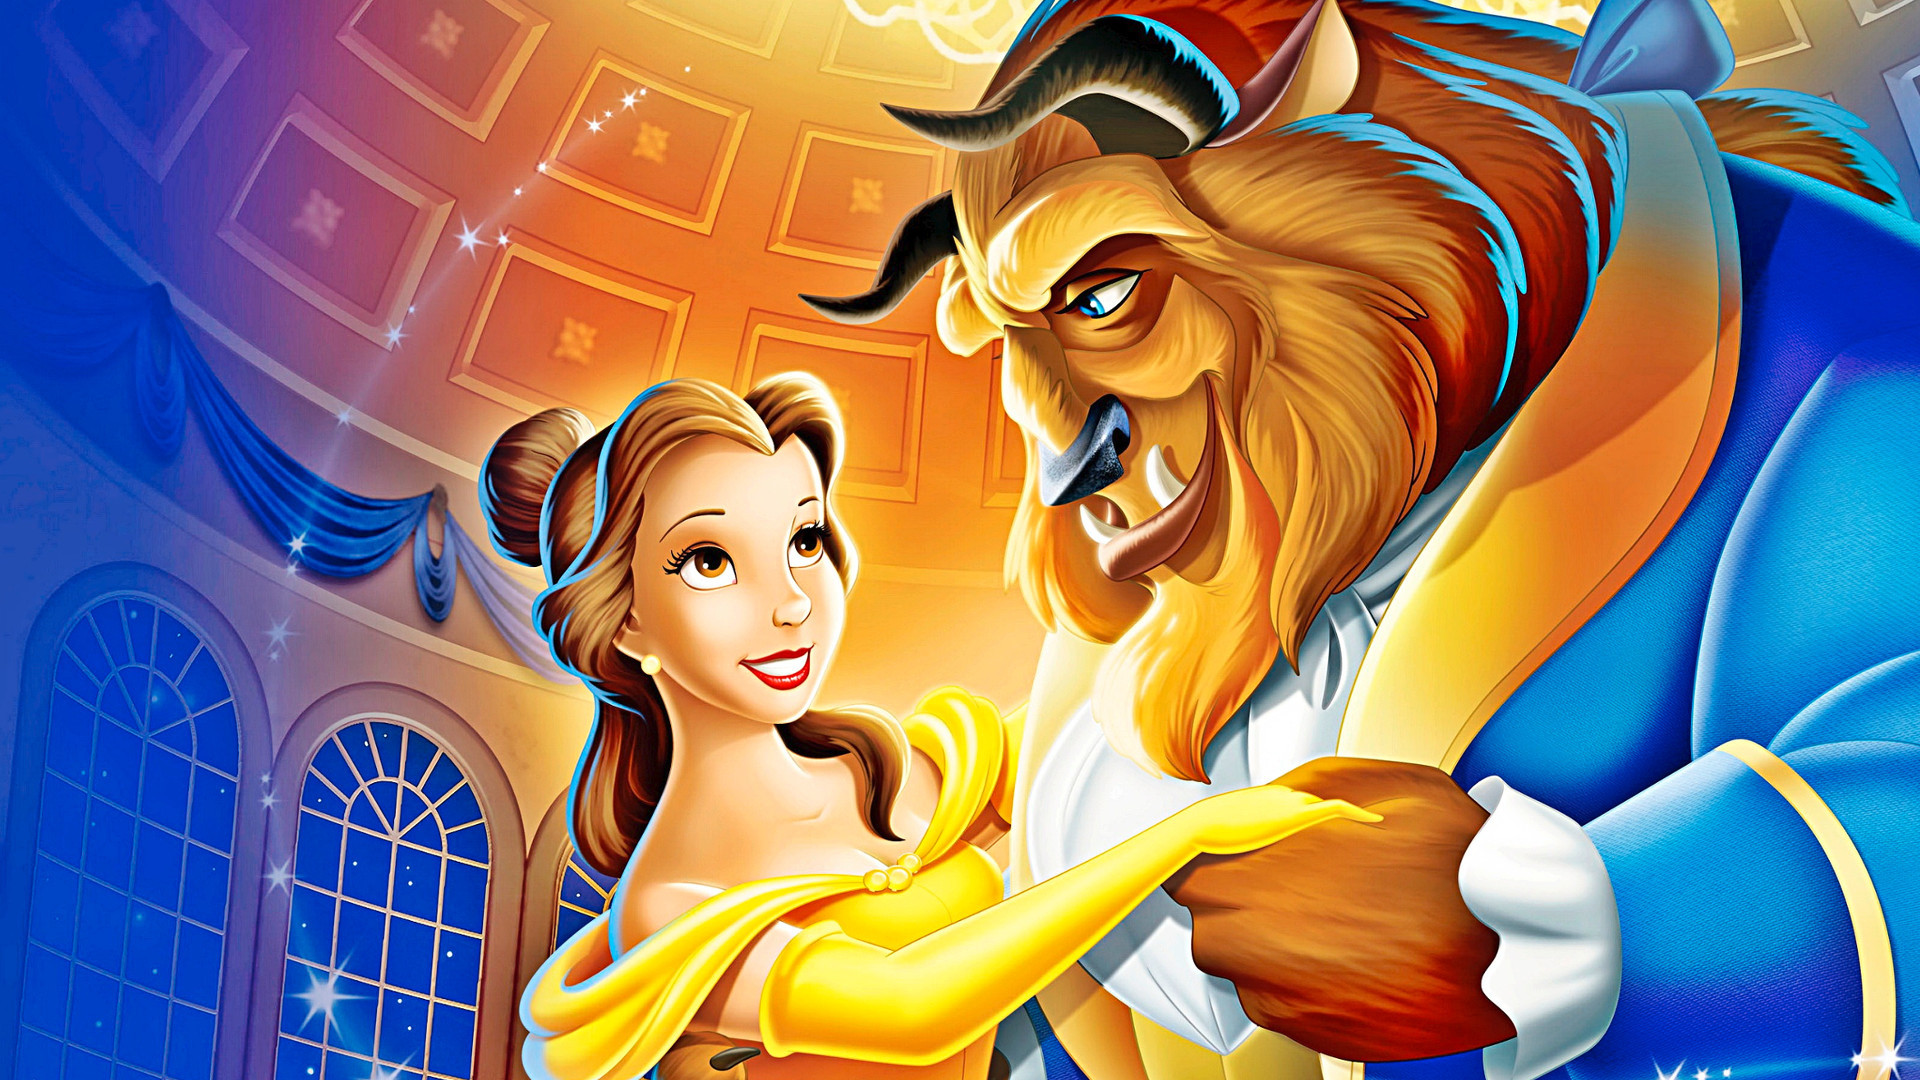 Beauty And The Beast Hd Wallpapers New Tab Playtime